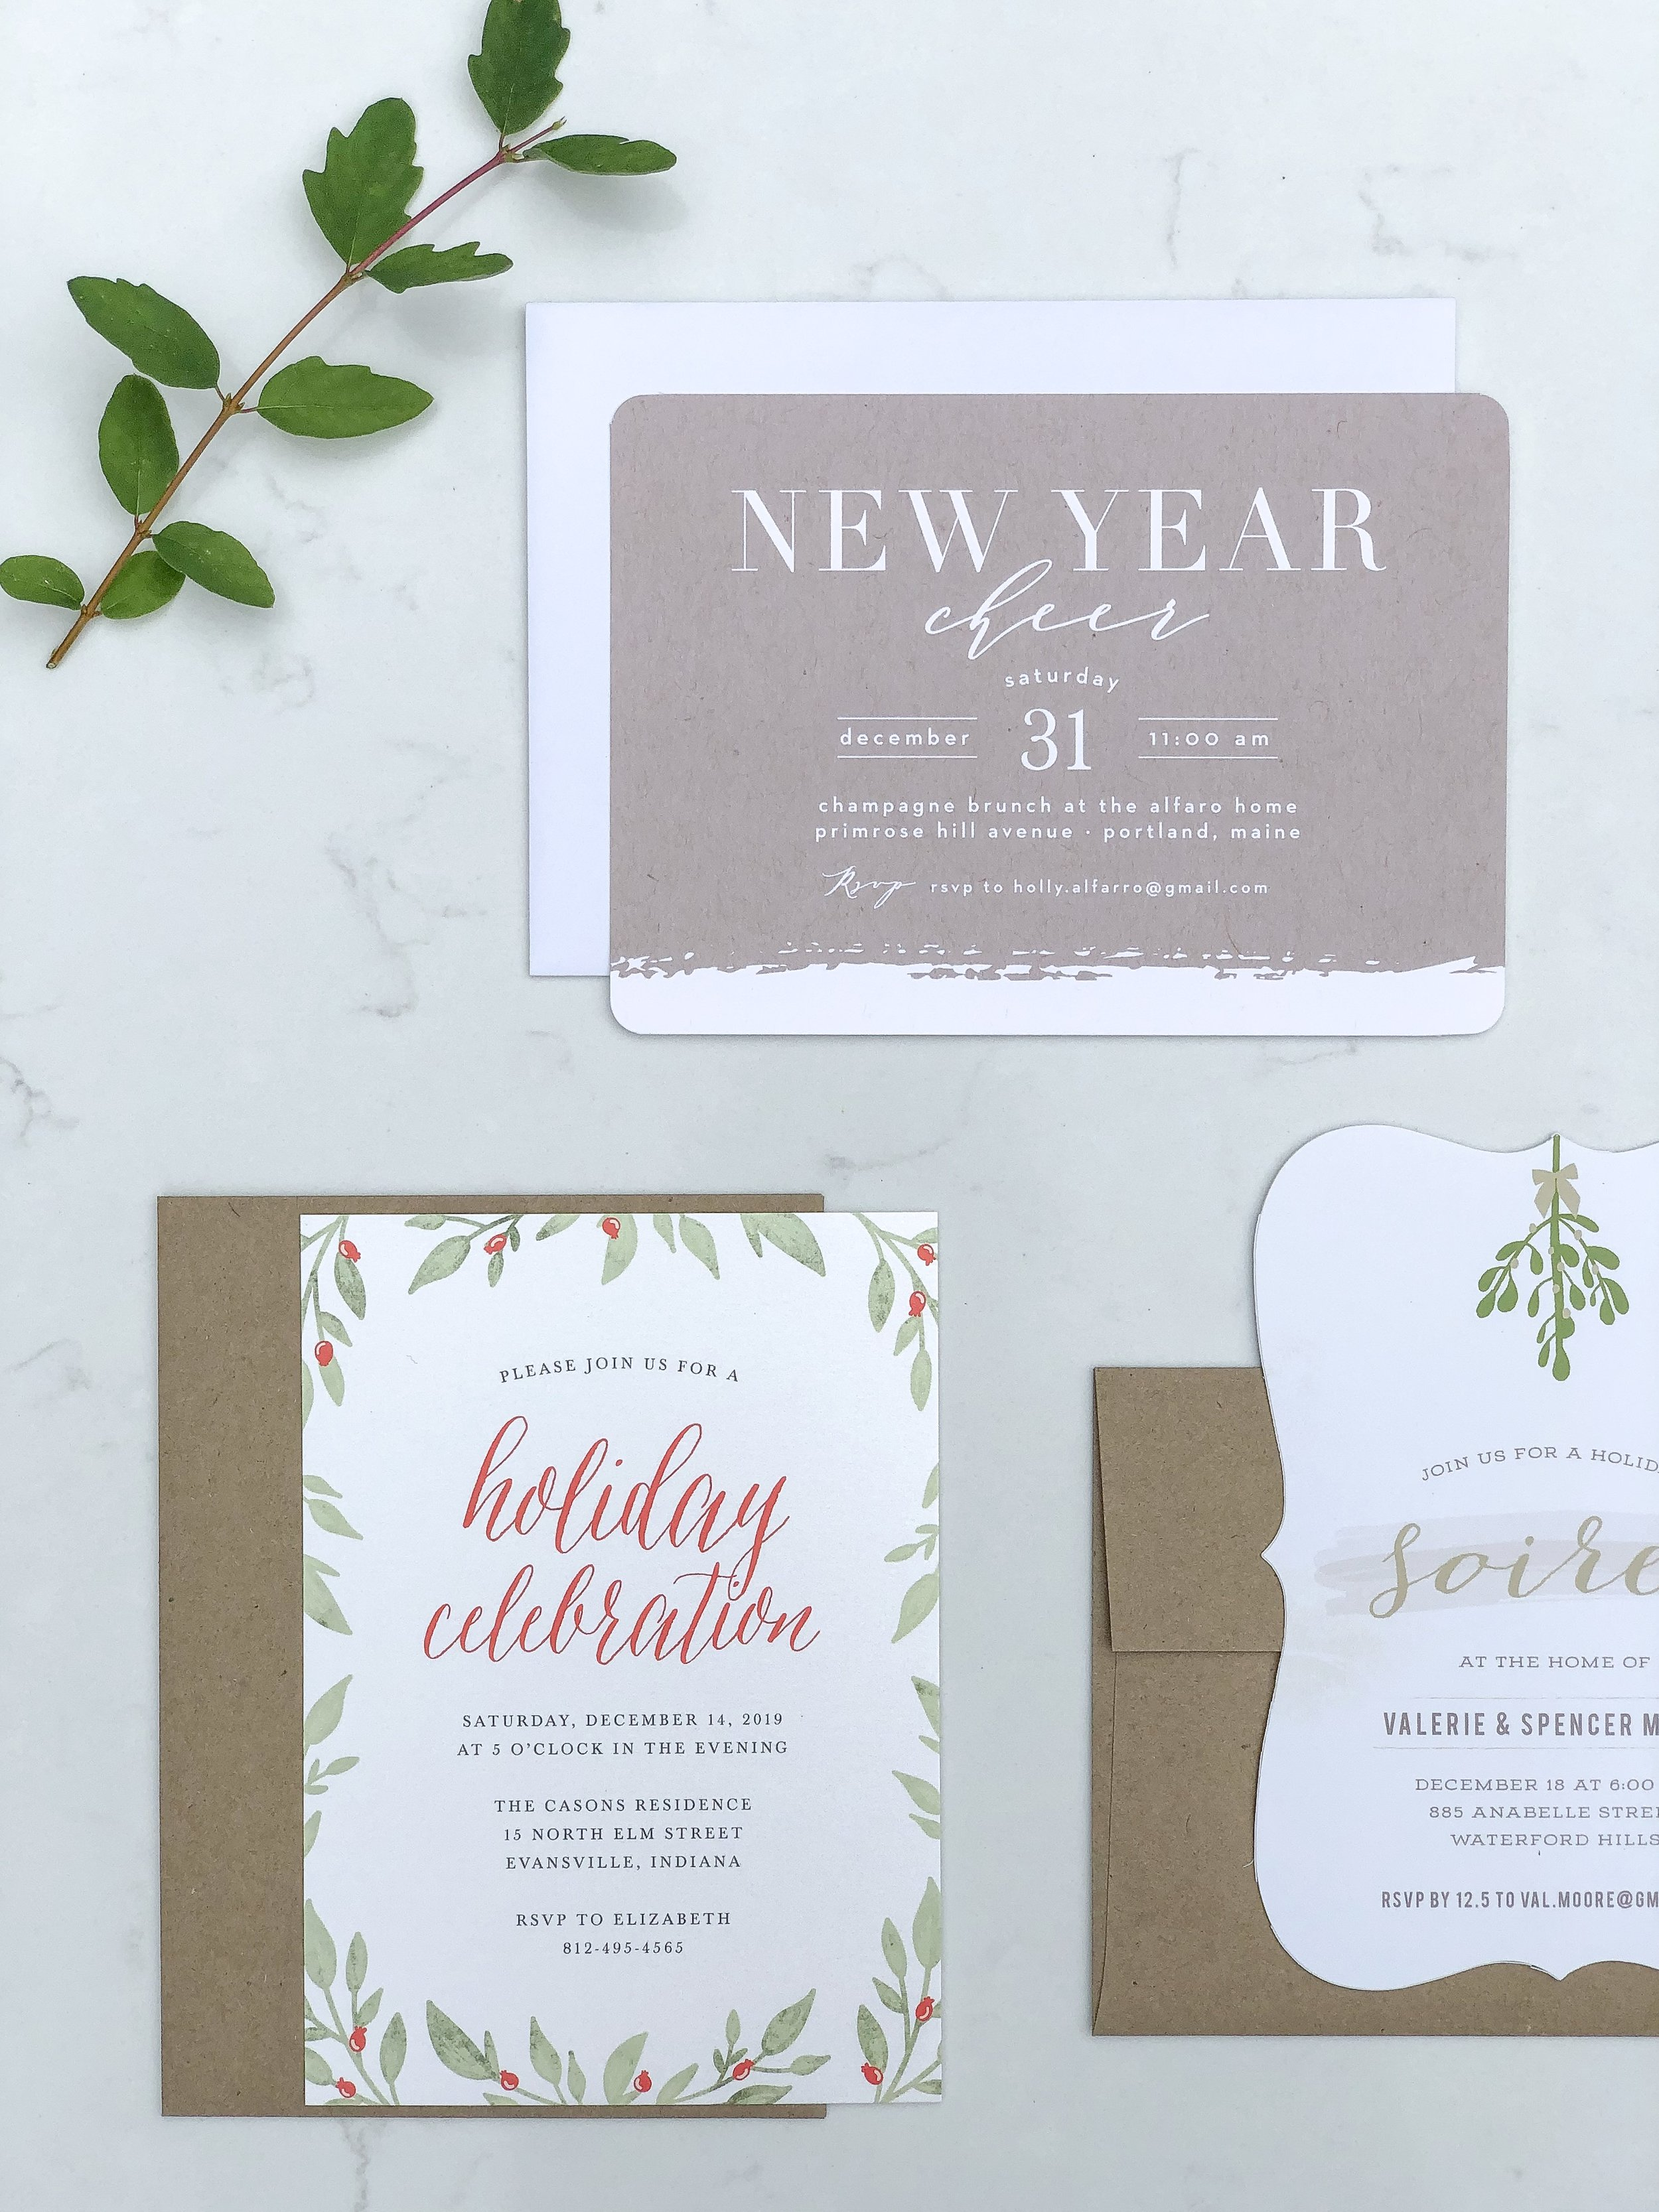 festive holiday cards from basic invite